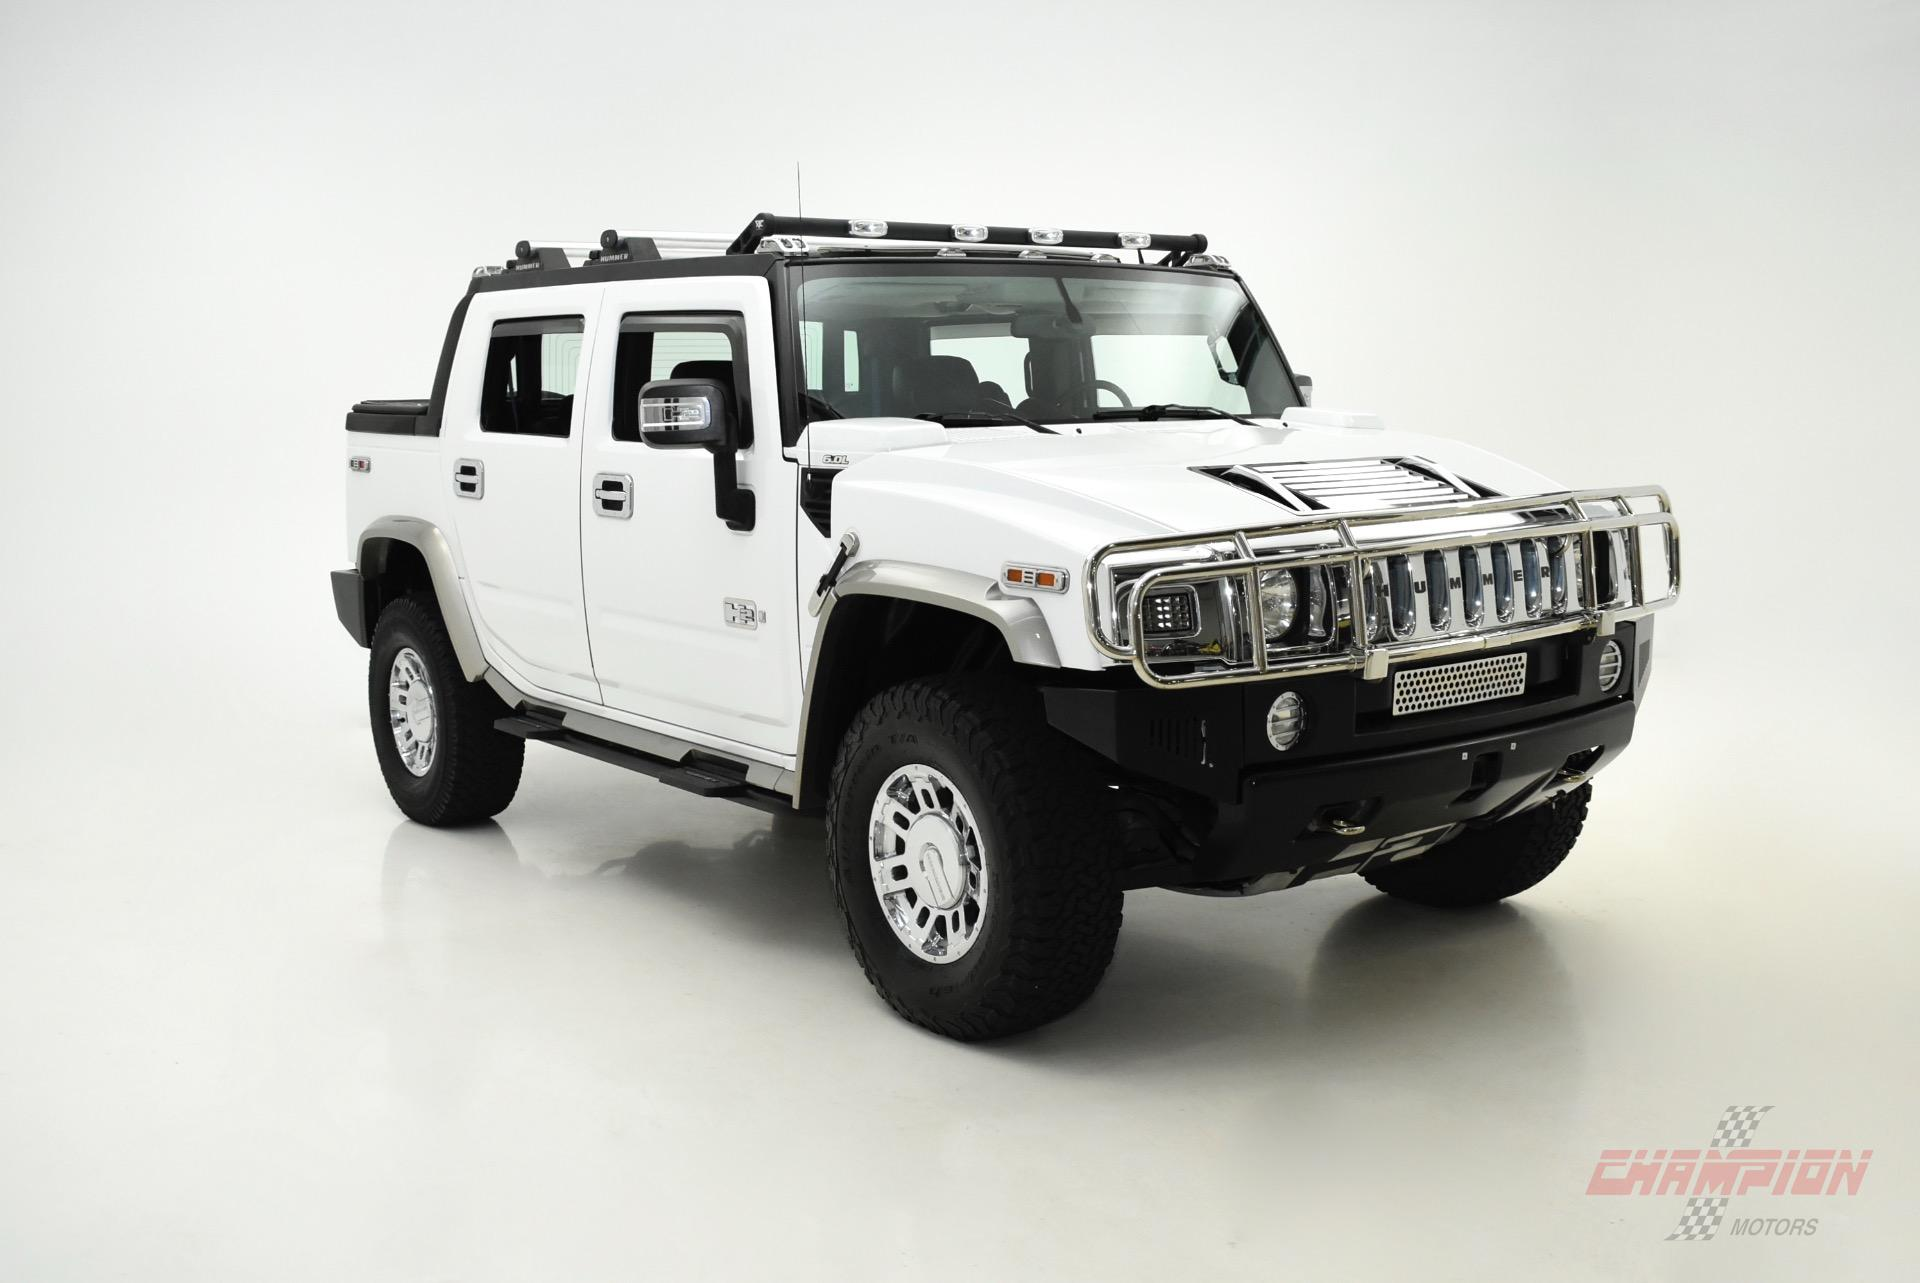 2006 HUMMER H2 SUT Exotic and Classic Car Dealership